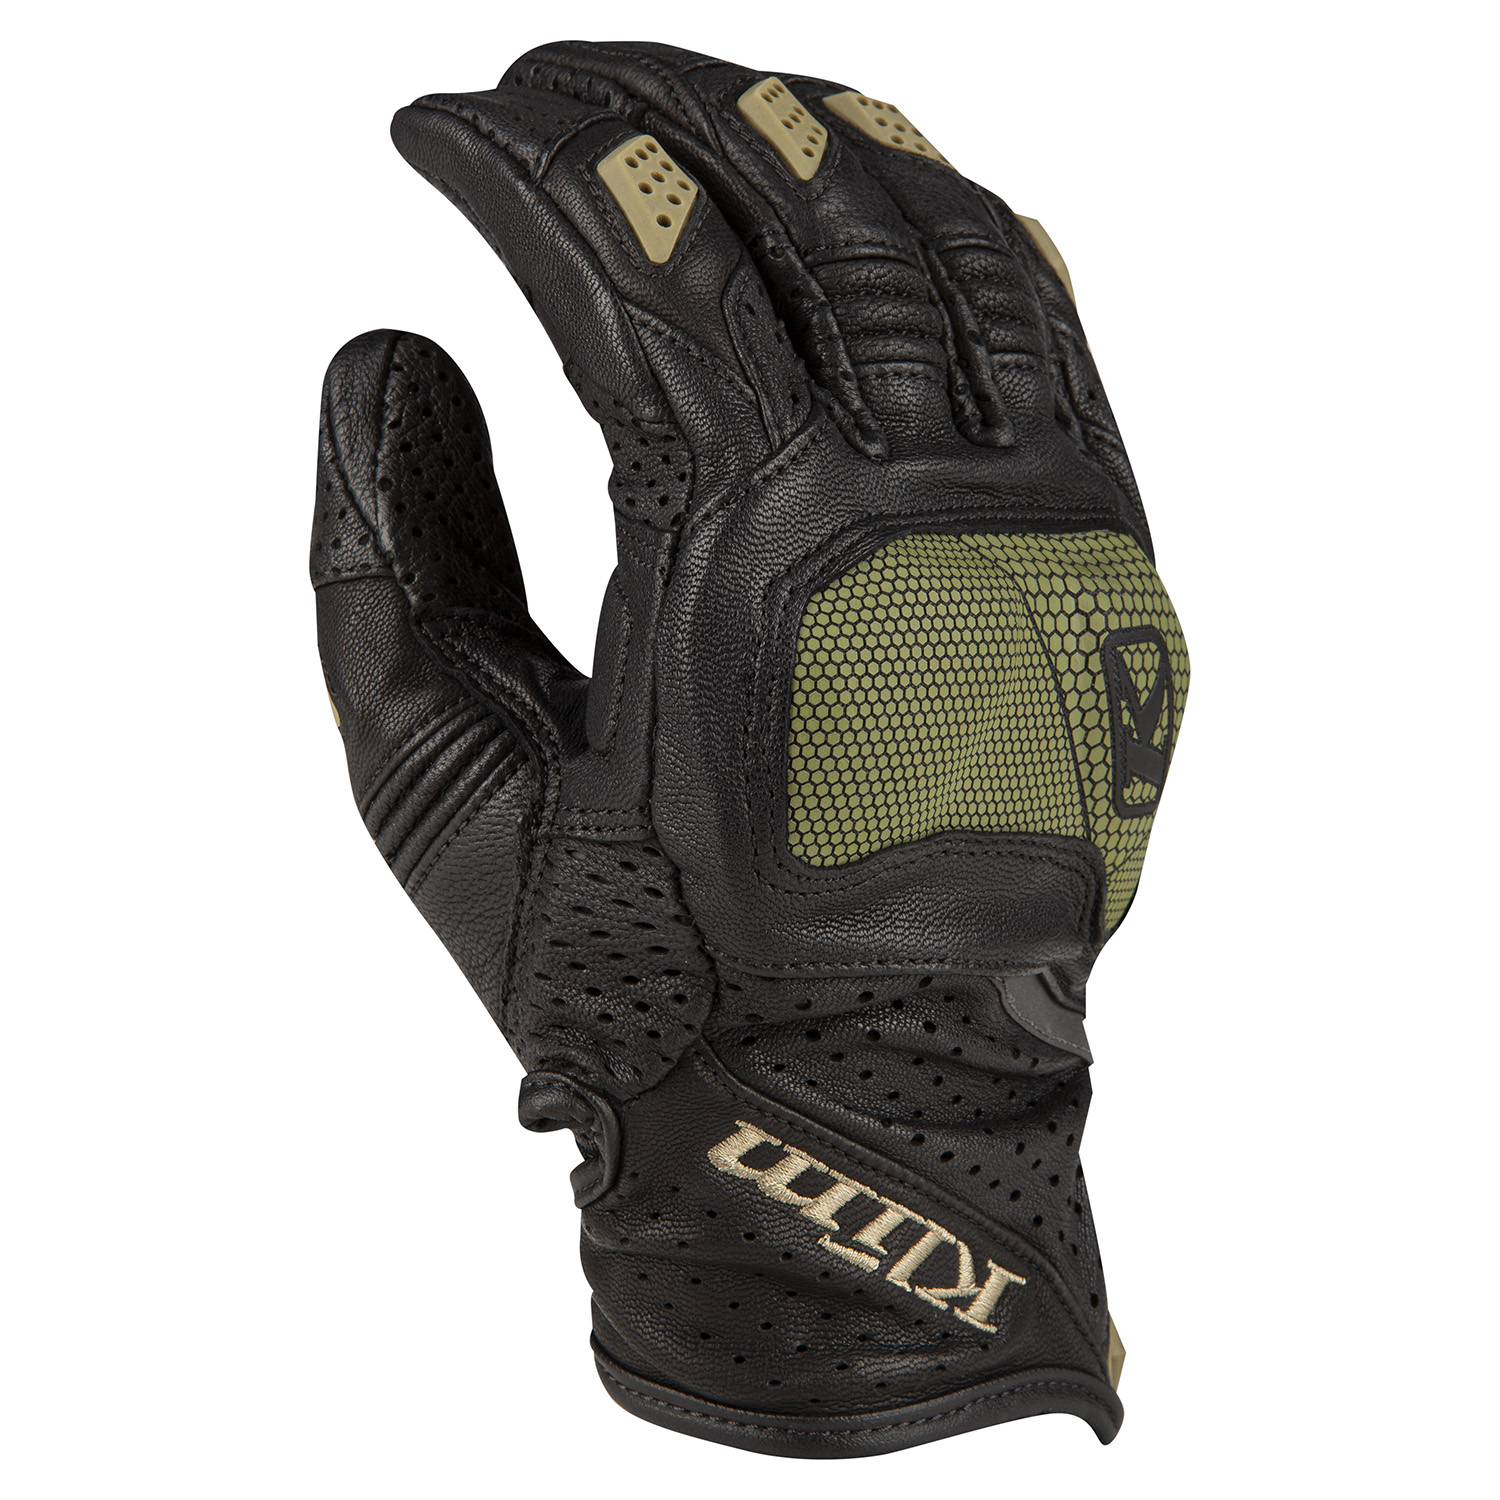 Badlands Aero Pro Short Glove Sage